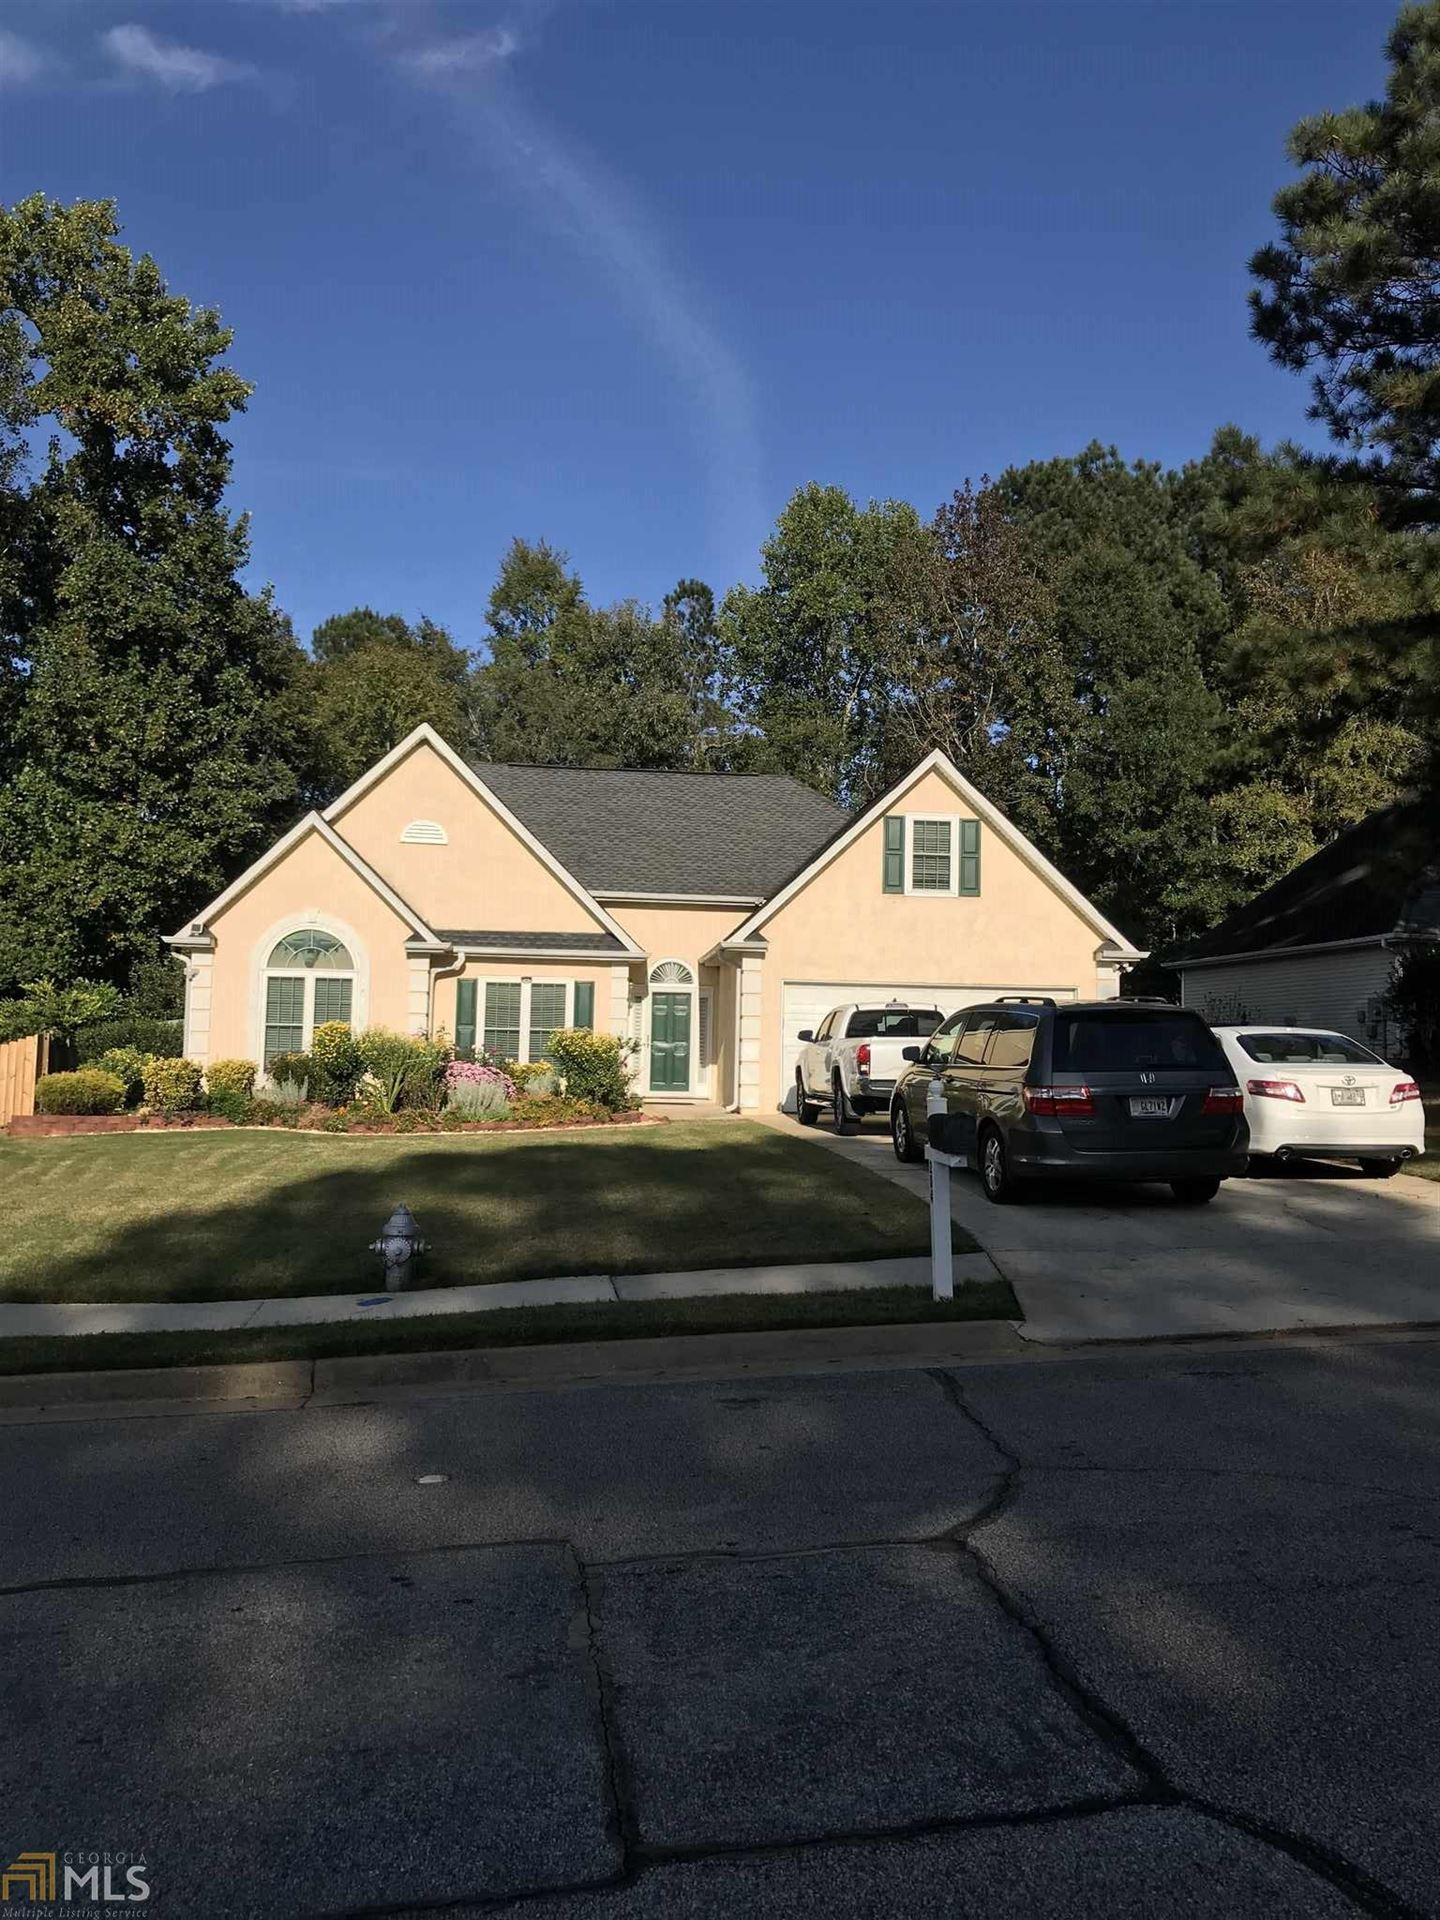 204 Kensington Trce, Stockbridge, GA 30281 - MLS#: 8877567